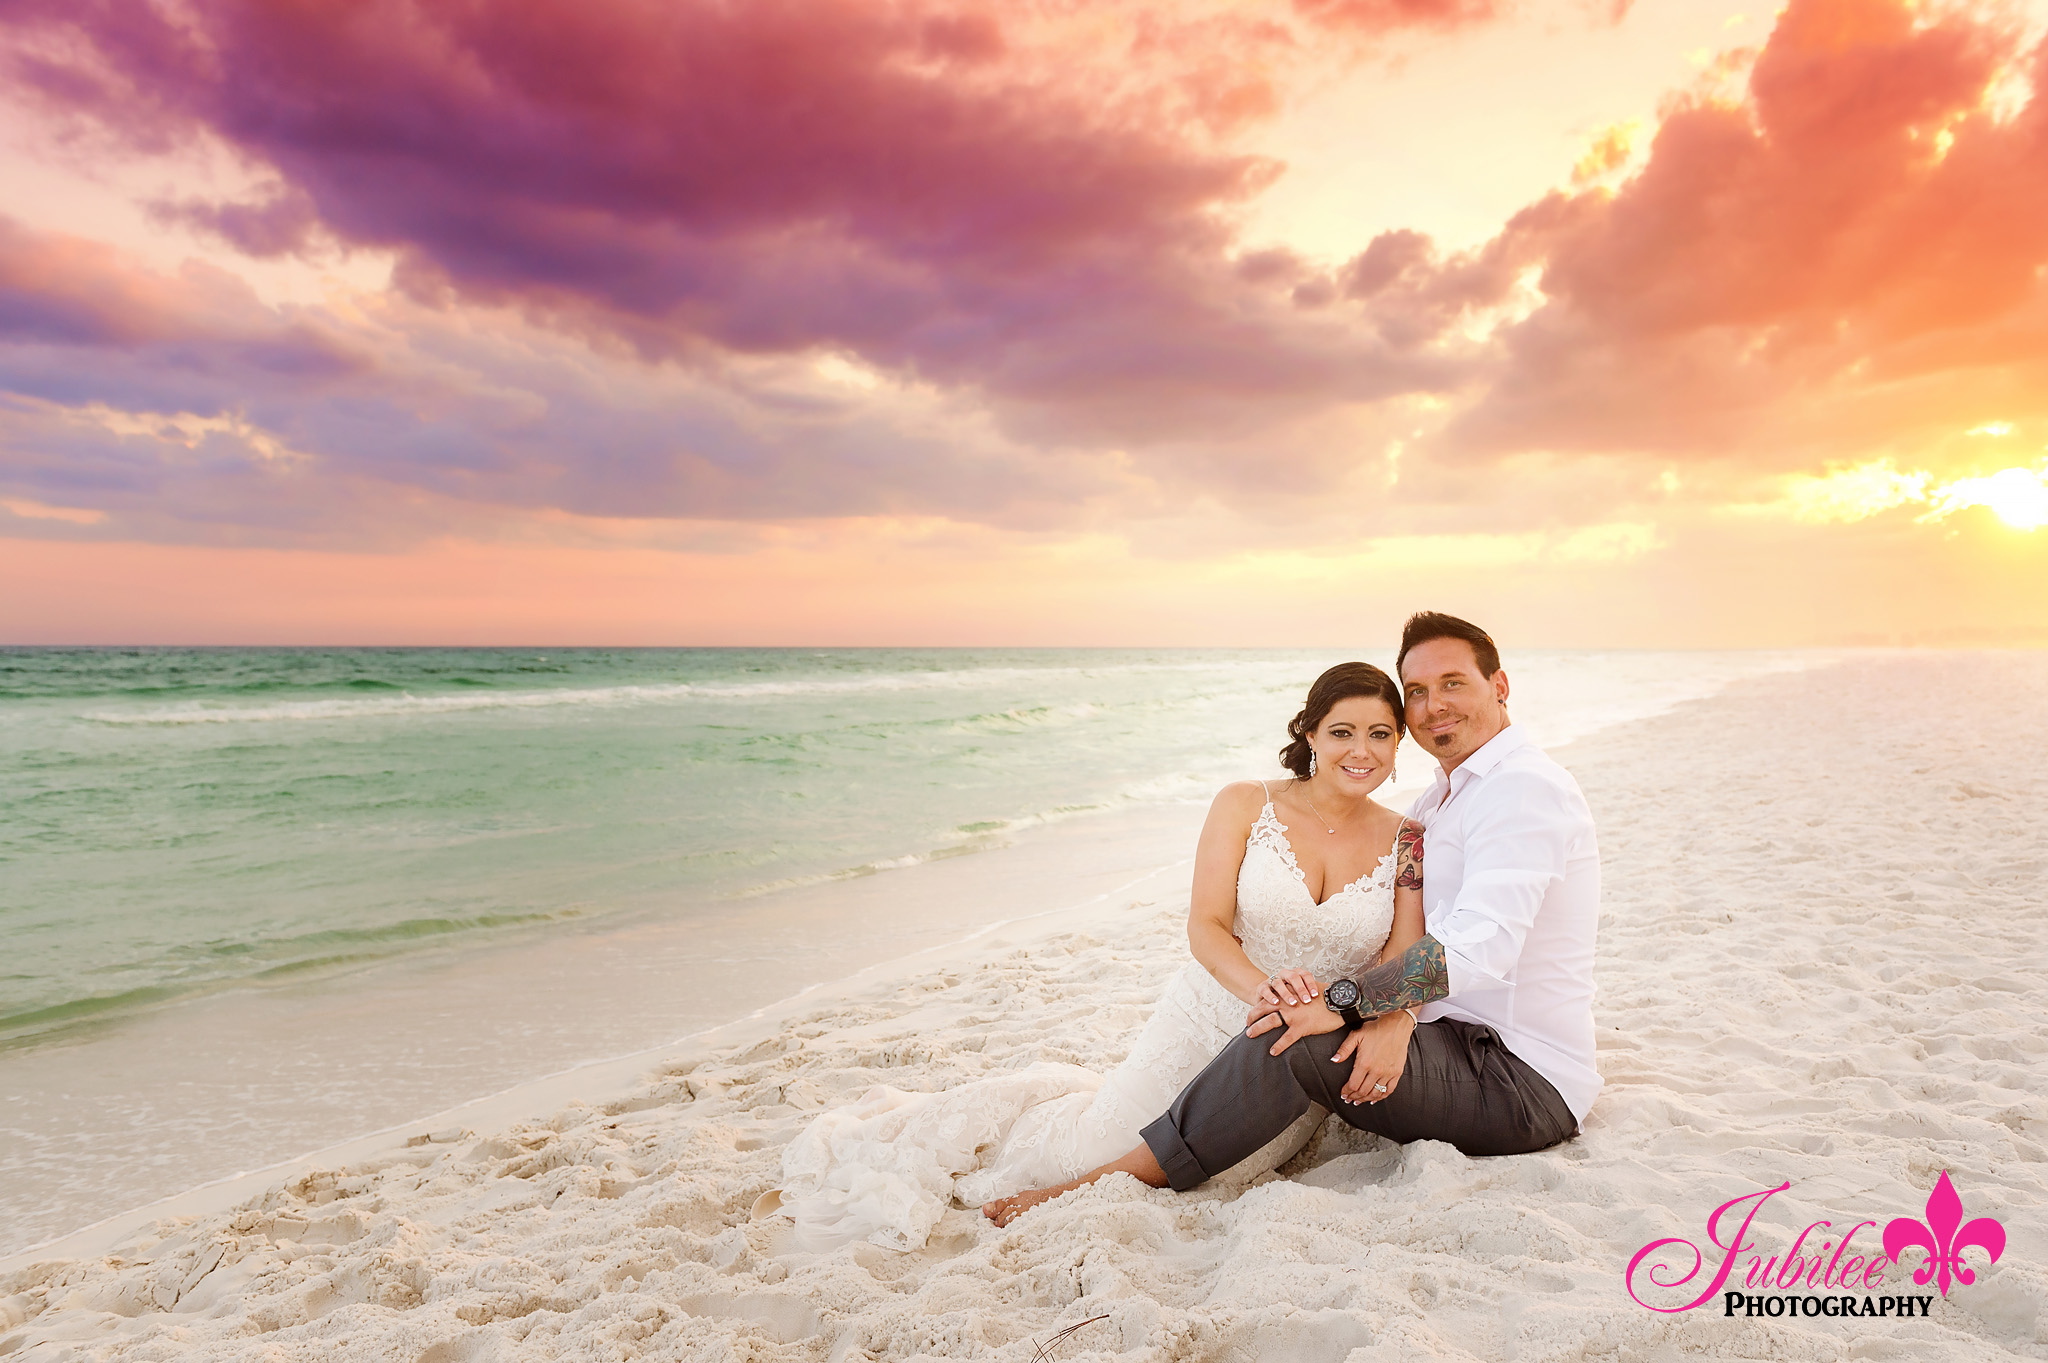 30A_Wedding_Photographer_7179